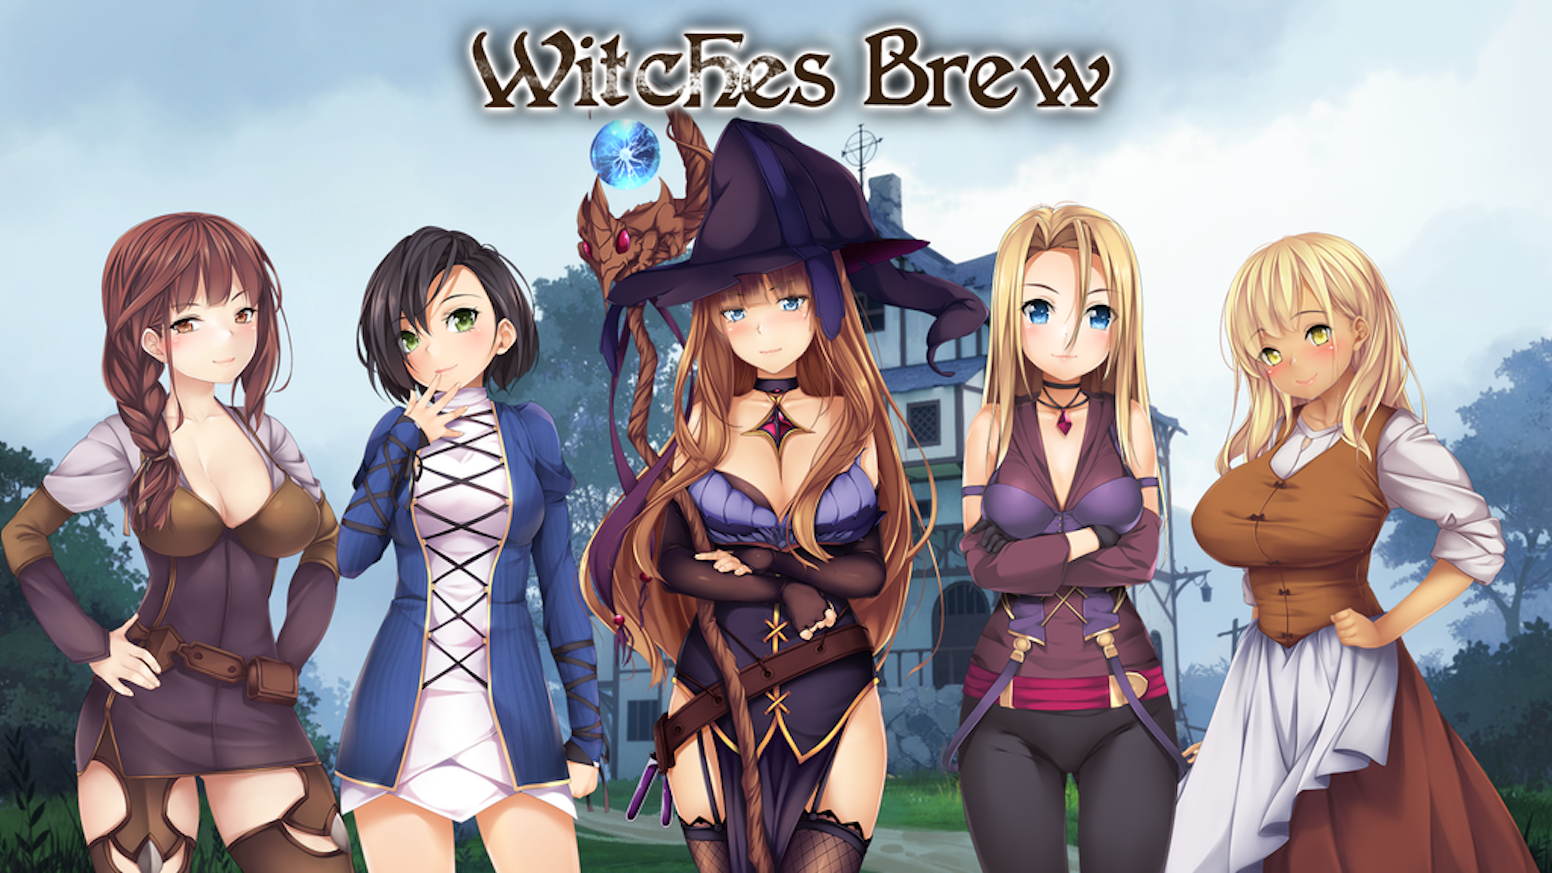 A Fantasy, Crafting, Roleplay game... Coming out on Steam in Summer 2020. Follow the store page and wishlist the game for the latest news on release.